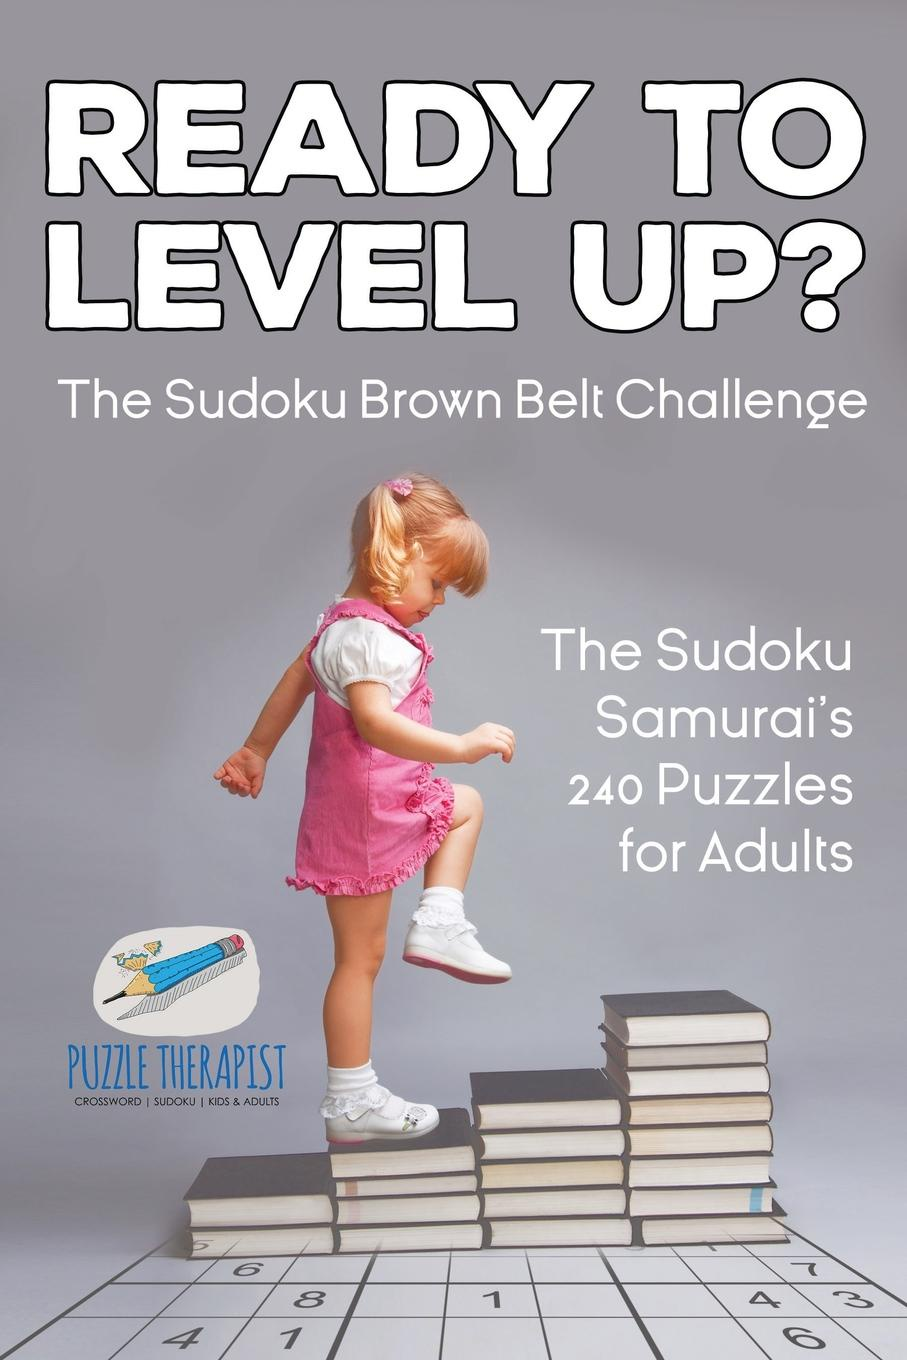 Speedy Publishing Ready to Level Up? The Sudoku Brown Belt Challenge . The Sudoku Samurai's 240 Puzzles for Adults puzzle therapist one a day sudoku for the utterly obsessed large print puzzles for adults